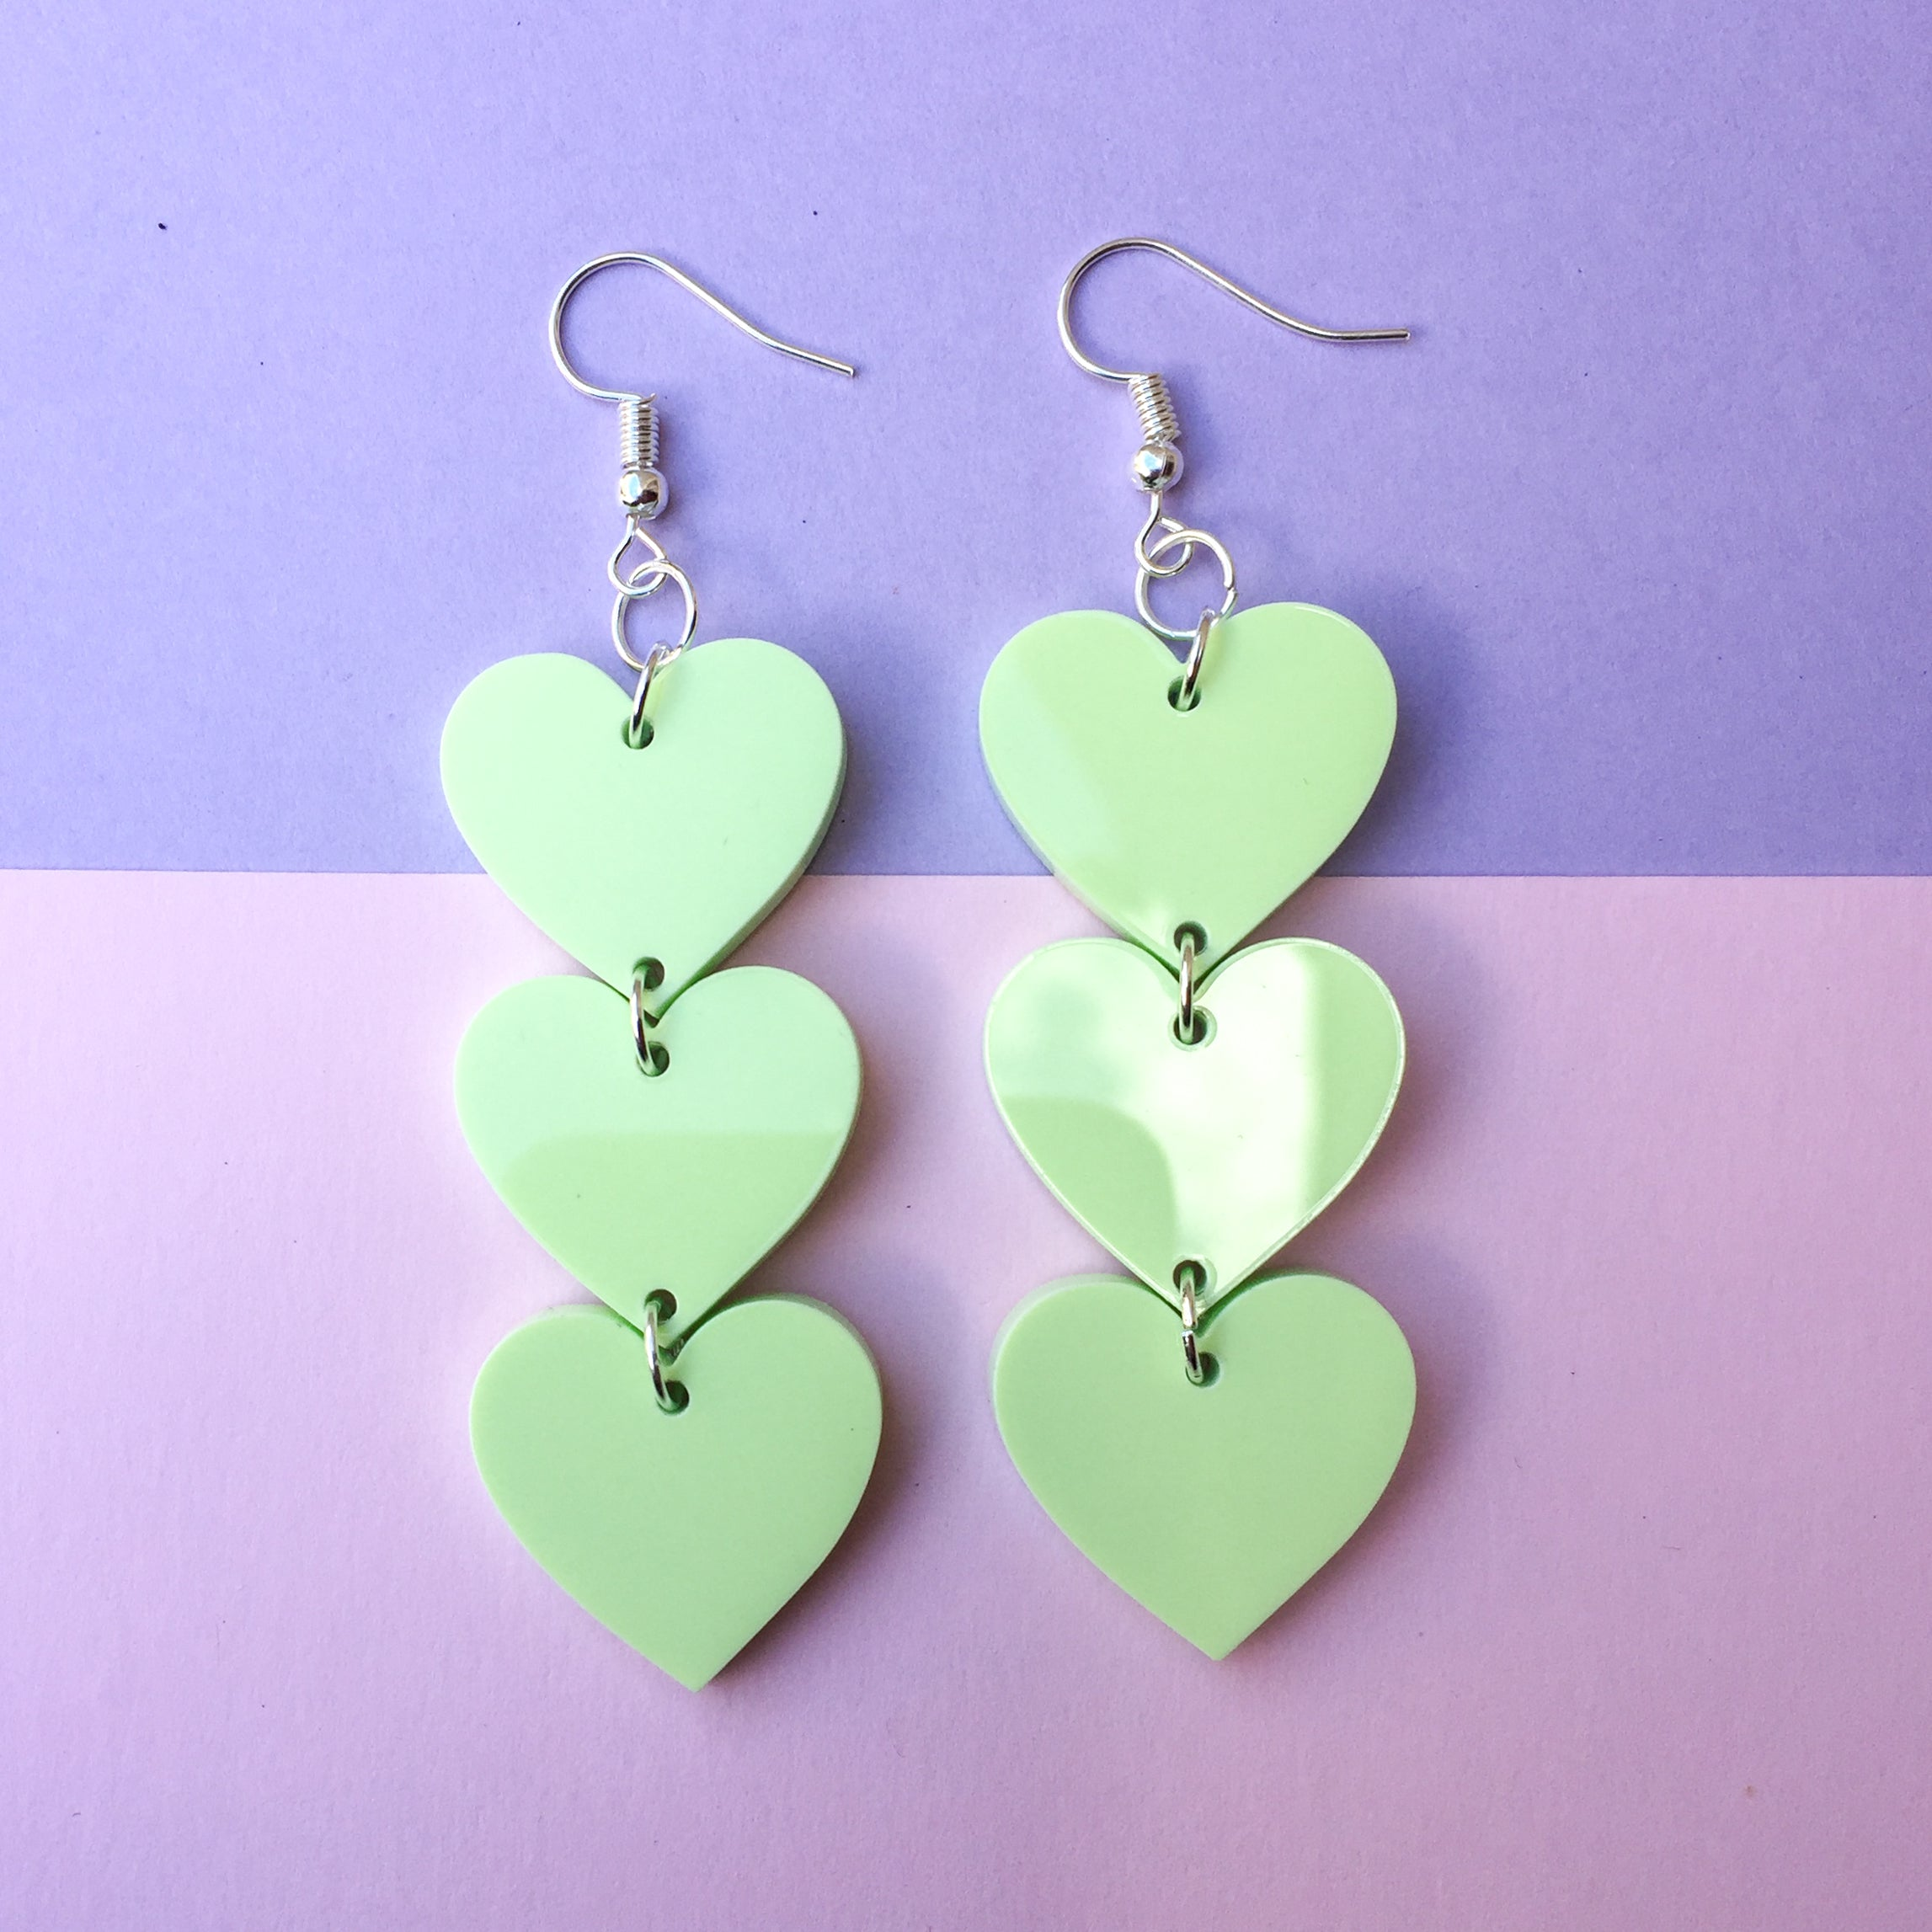 Three Tier Heart Hooks - Pastel Green